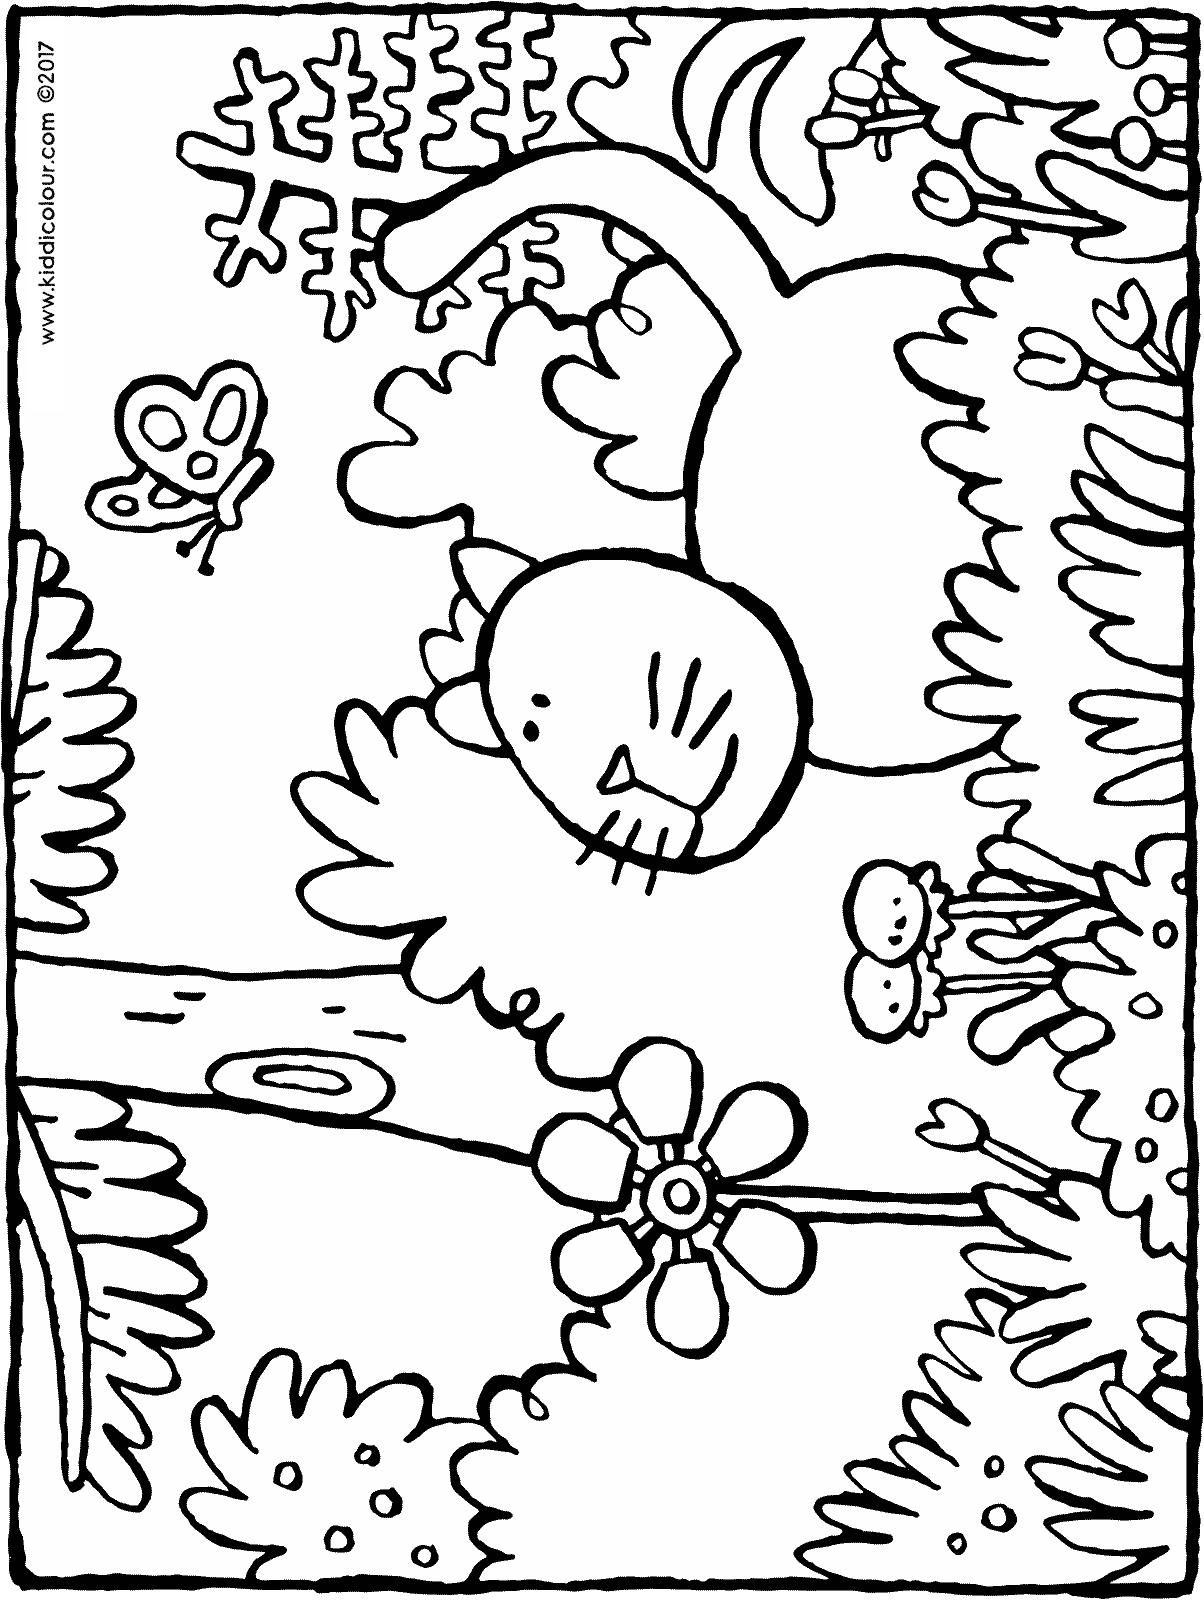 cat in the grass colouring page drawing picture 01H